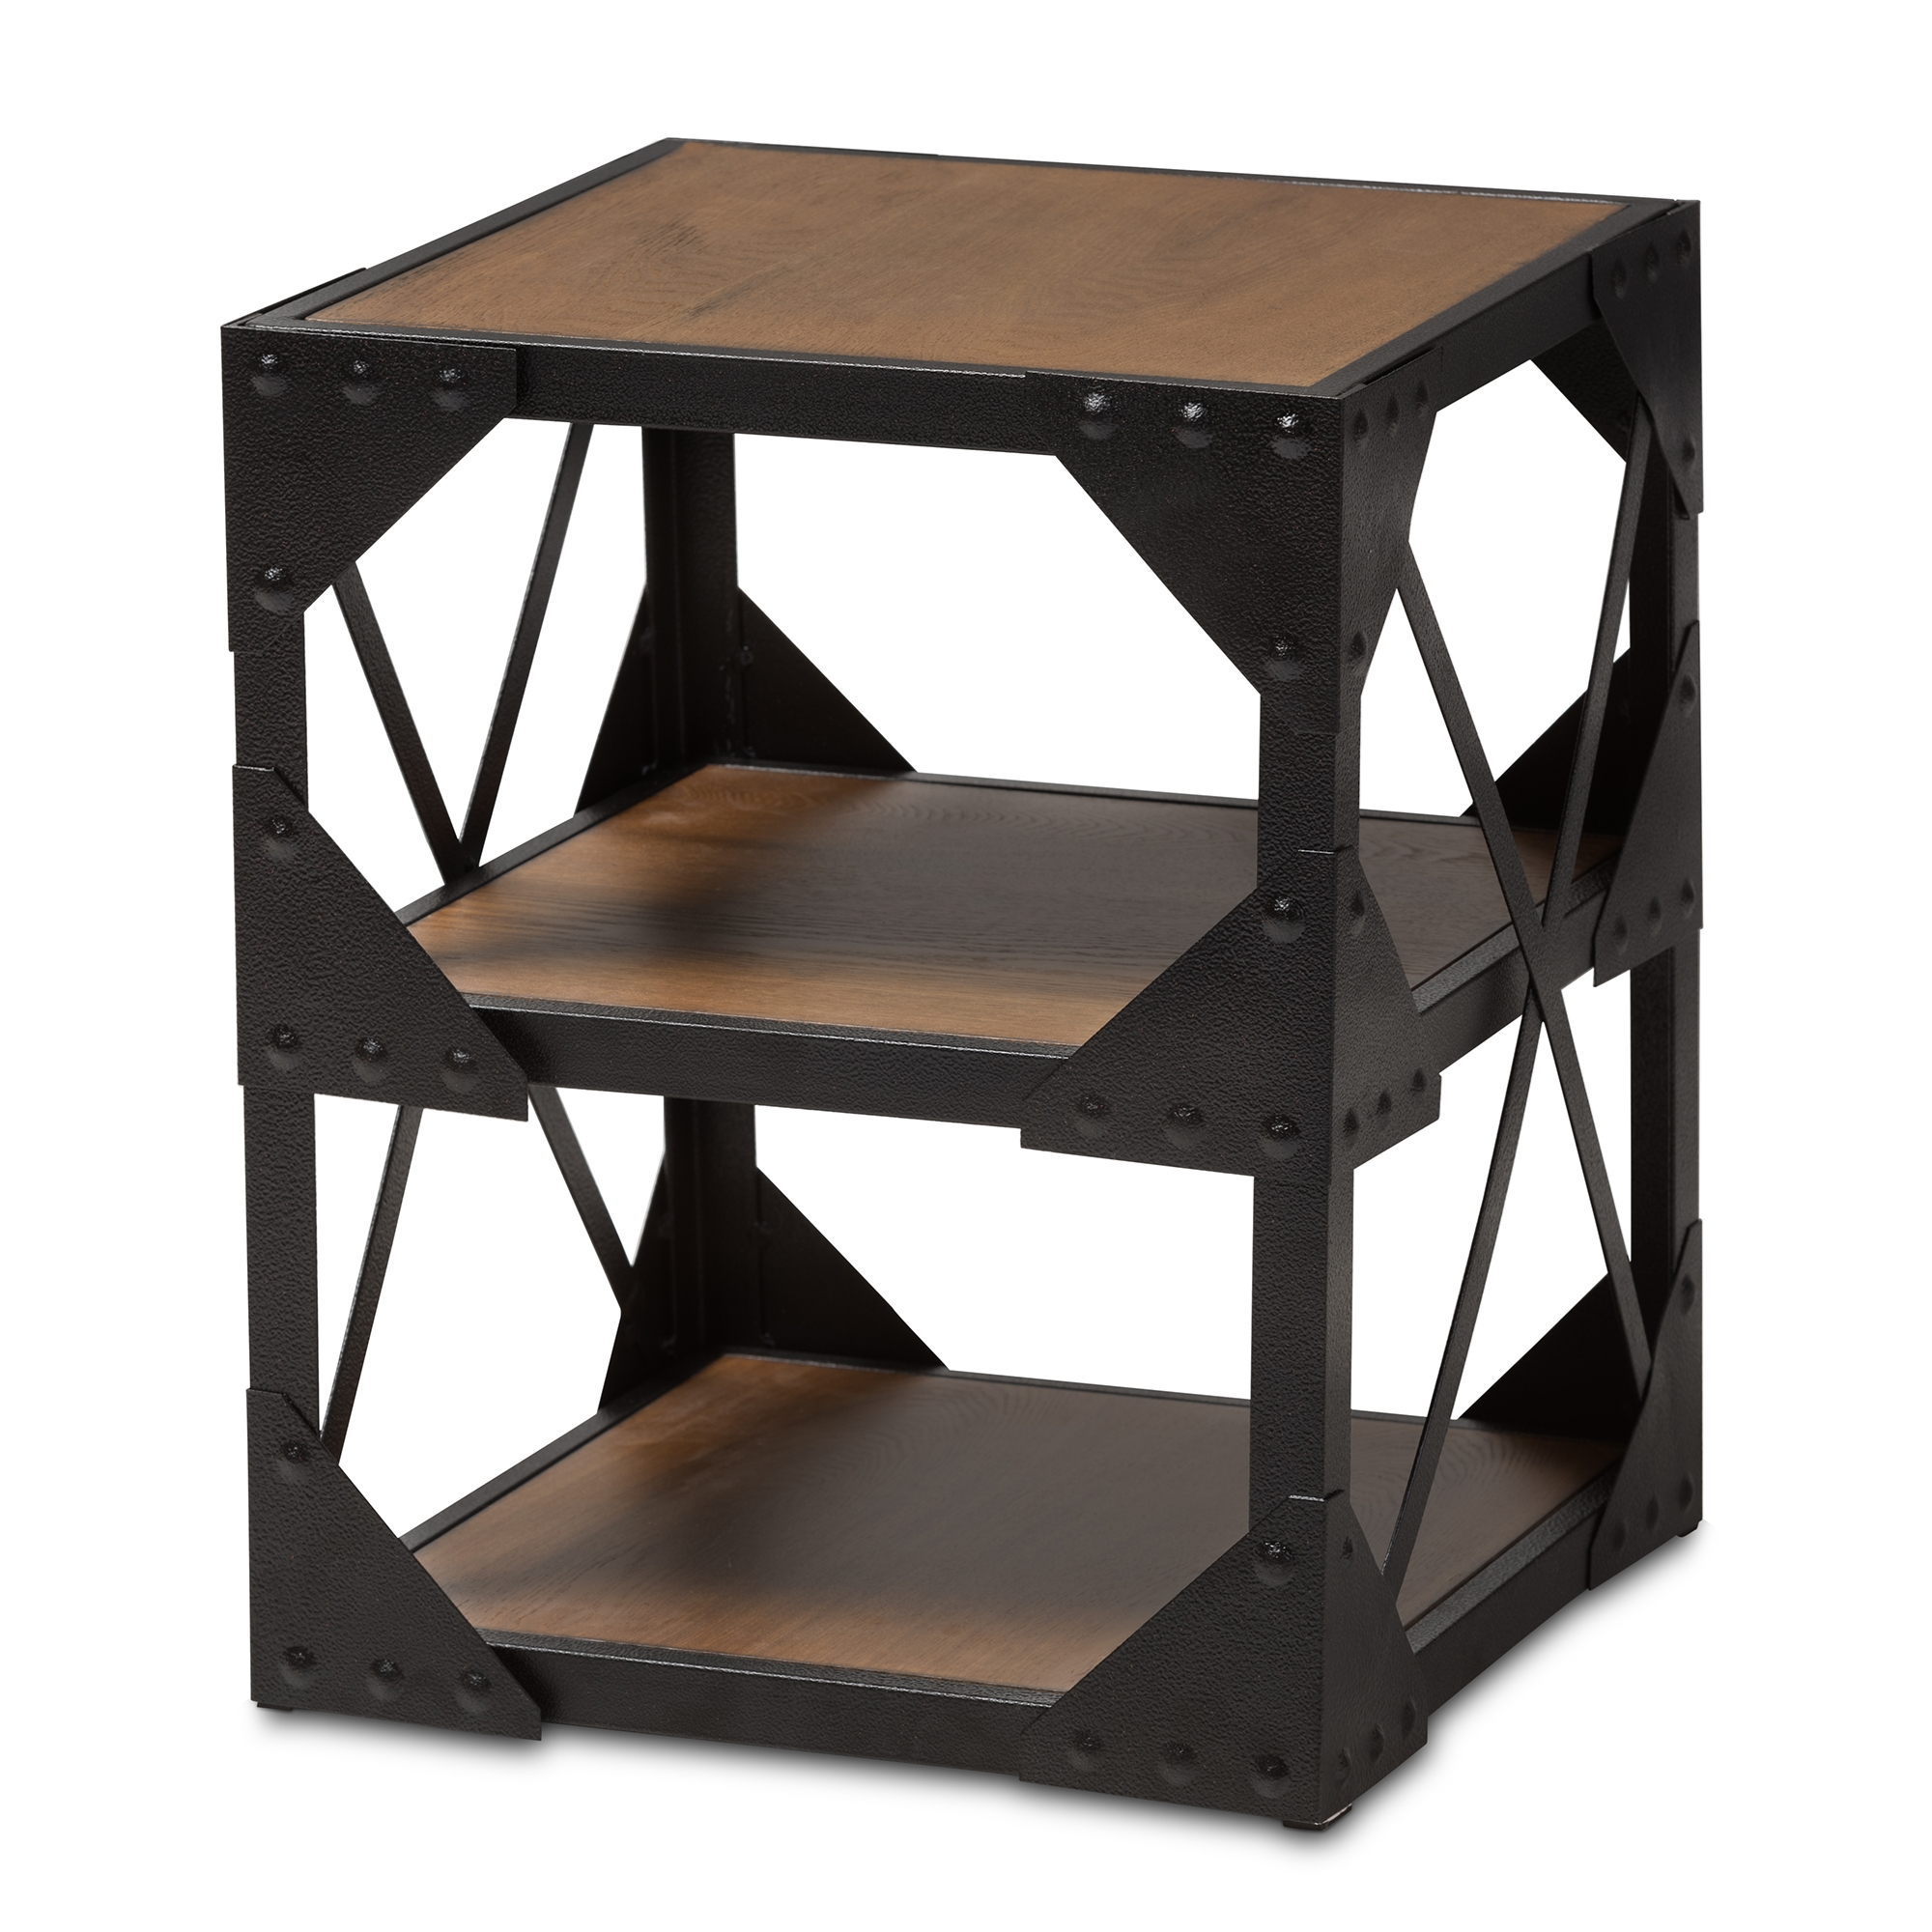 baxton studio hudson rustic industrial style antique black textured finished metal distressed wood occasional side table - Side Tables For Living Room